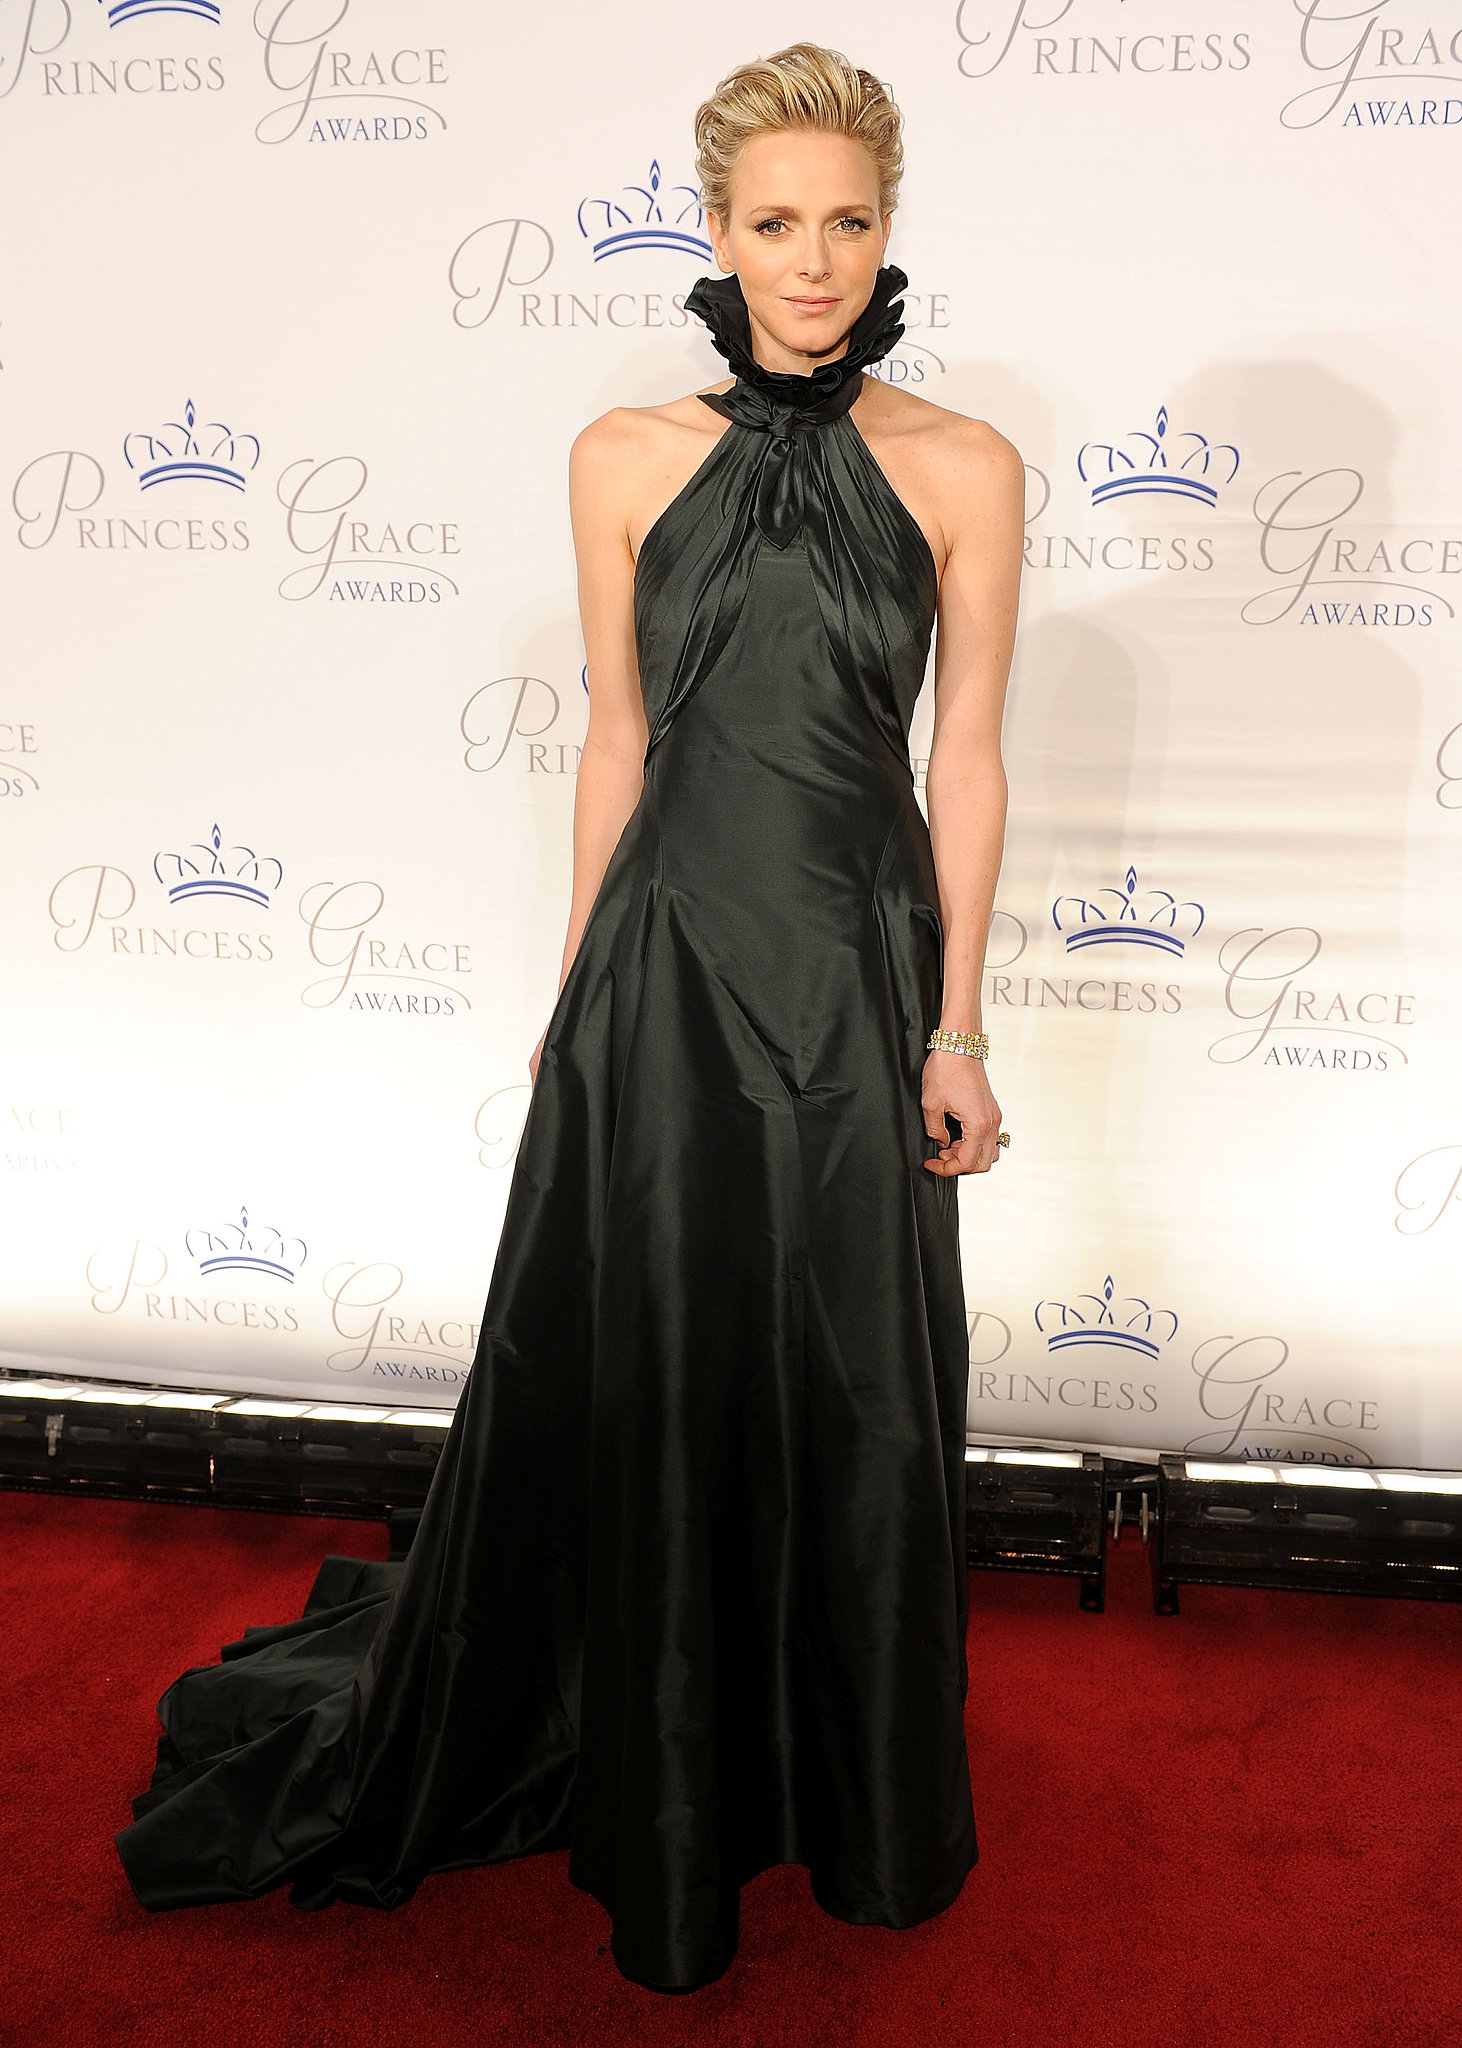 Princess Charlene looked regal for the Princess Grace Awards in a high-neck design.